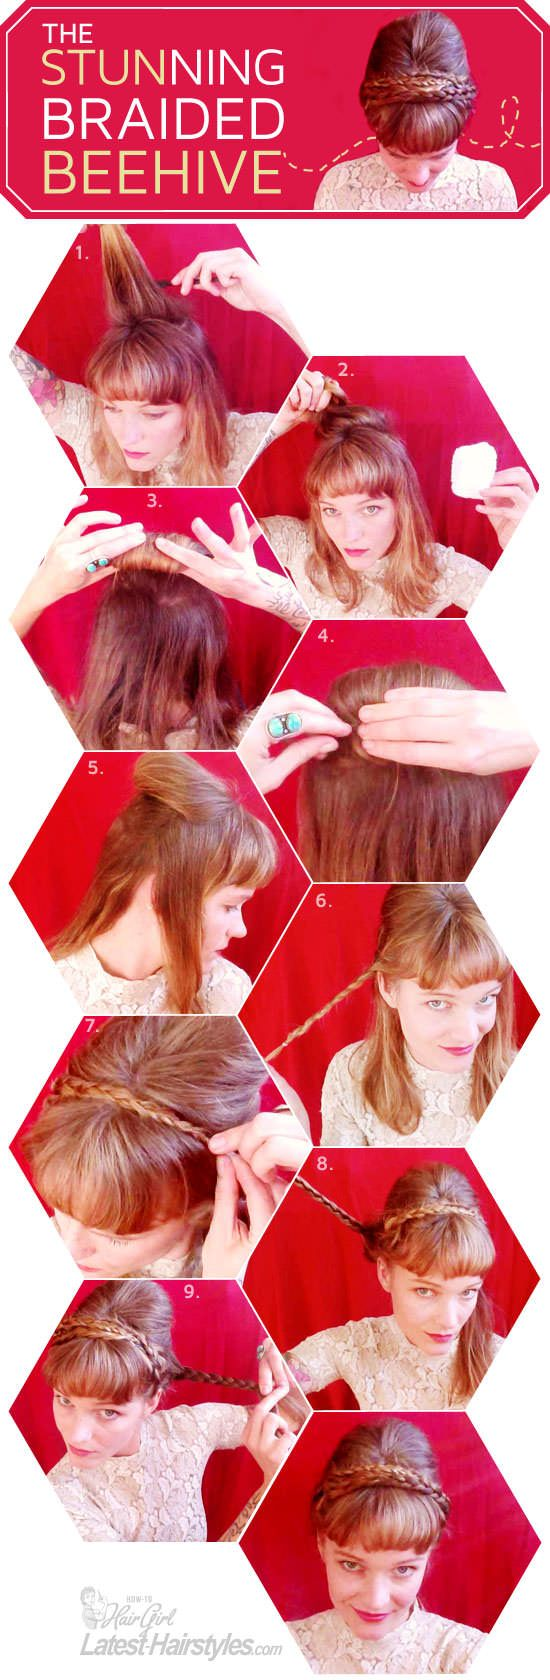 Braided Beehive Updo...LOVE IT! Full tutorial here...    http://www.latest-hairstyles.com/tutorials/braided-beehive.html